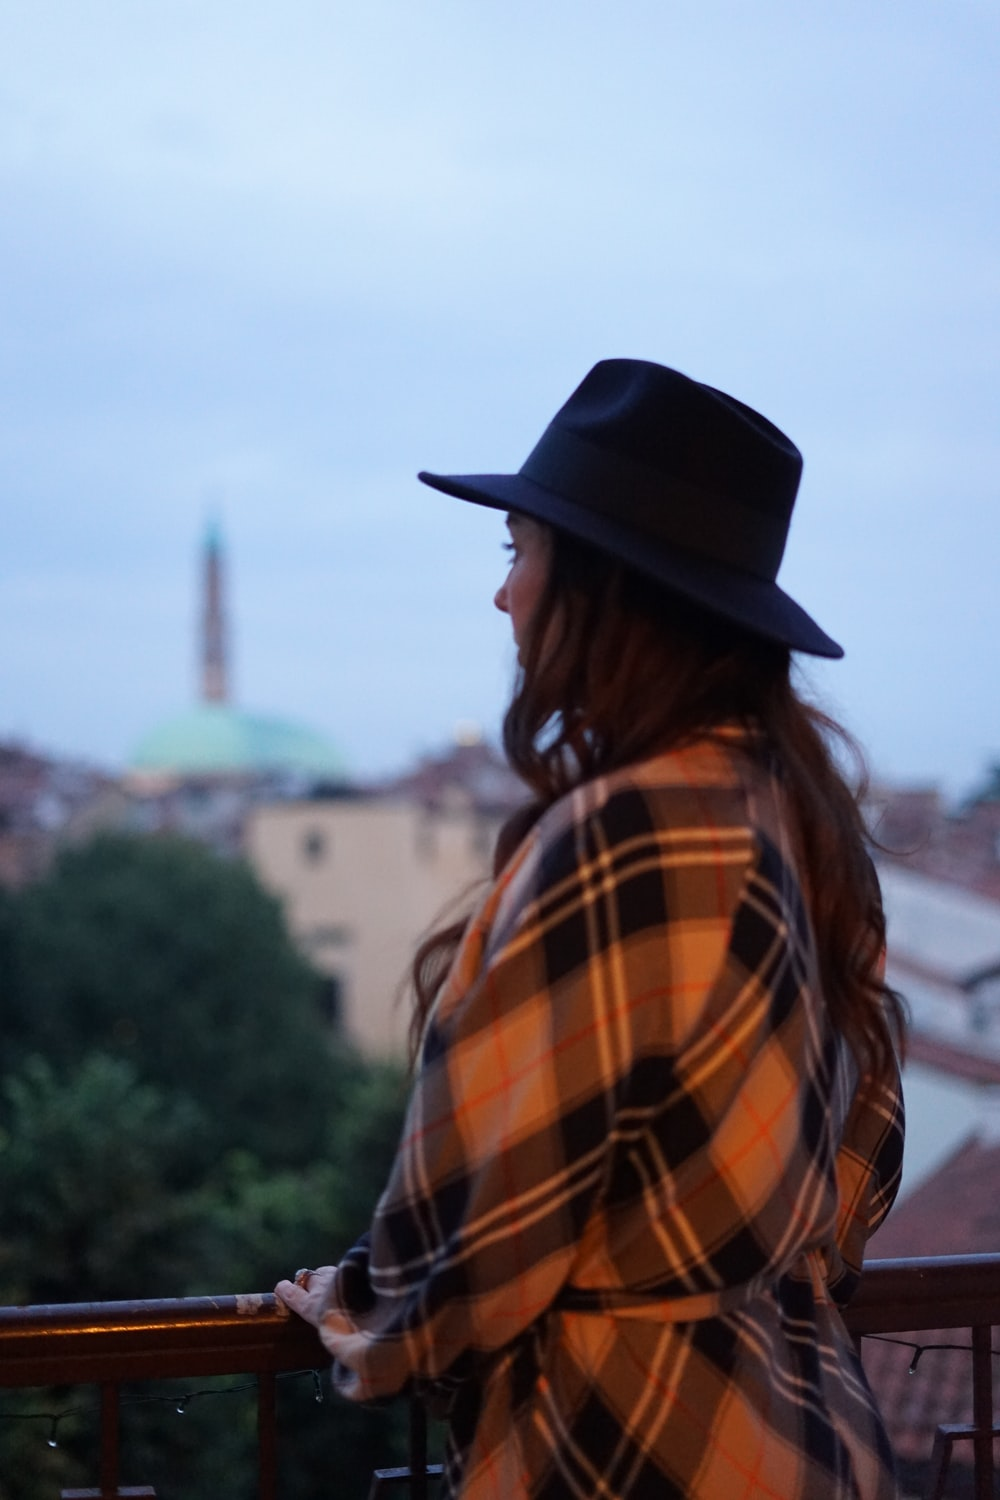 woman in black cowboy hat standing near green trees during daytime